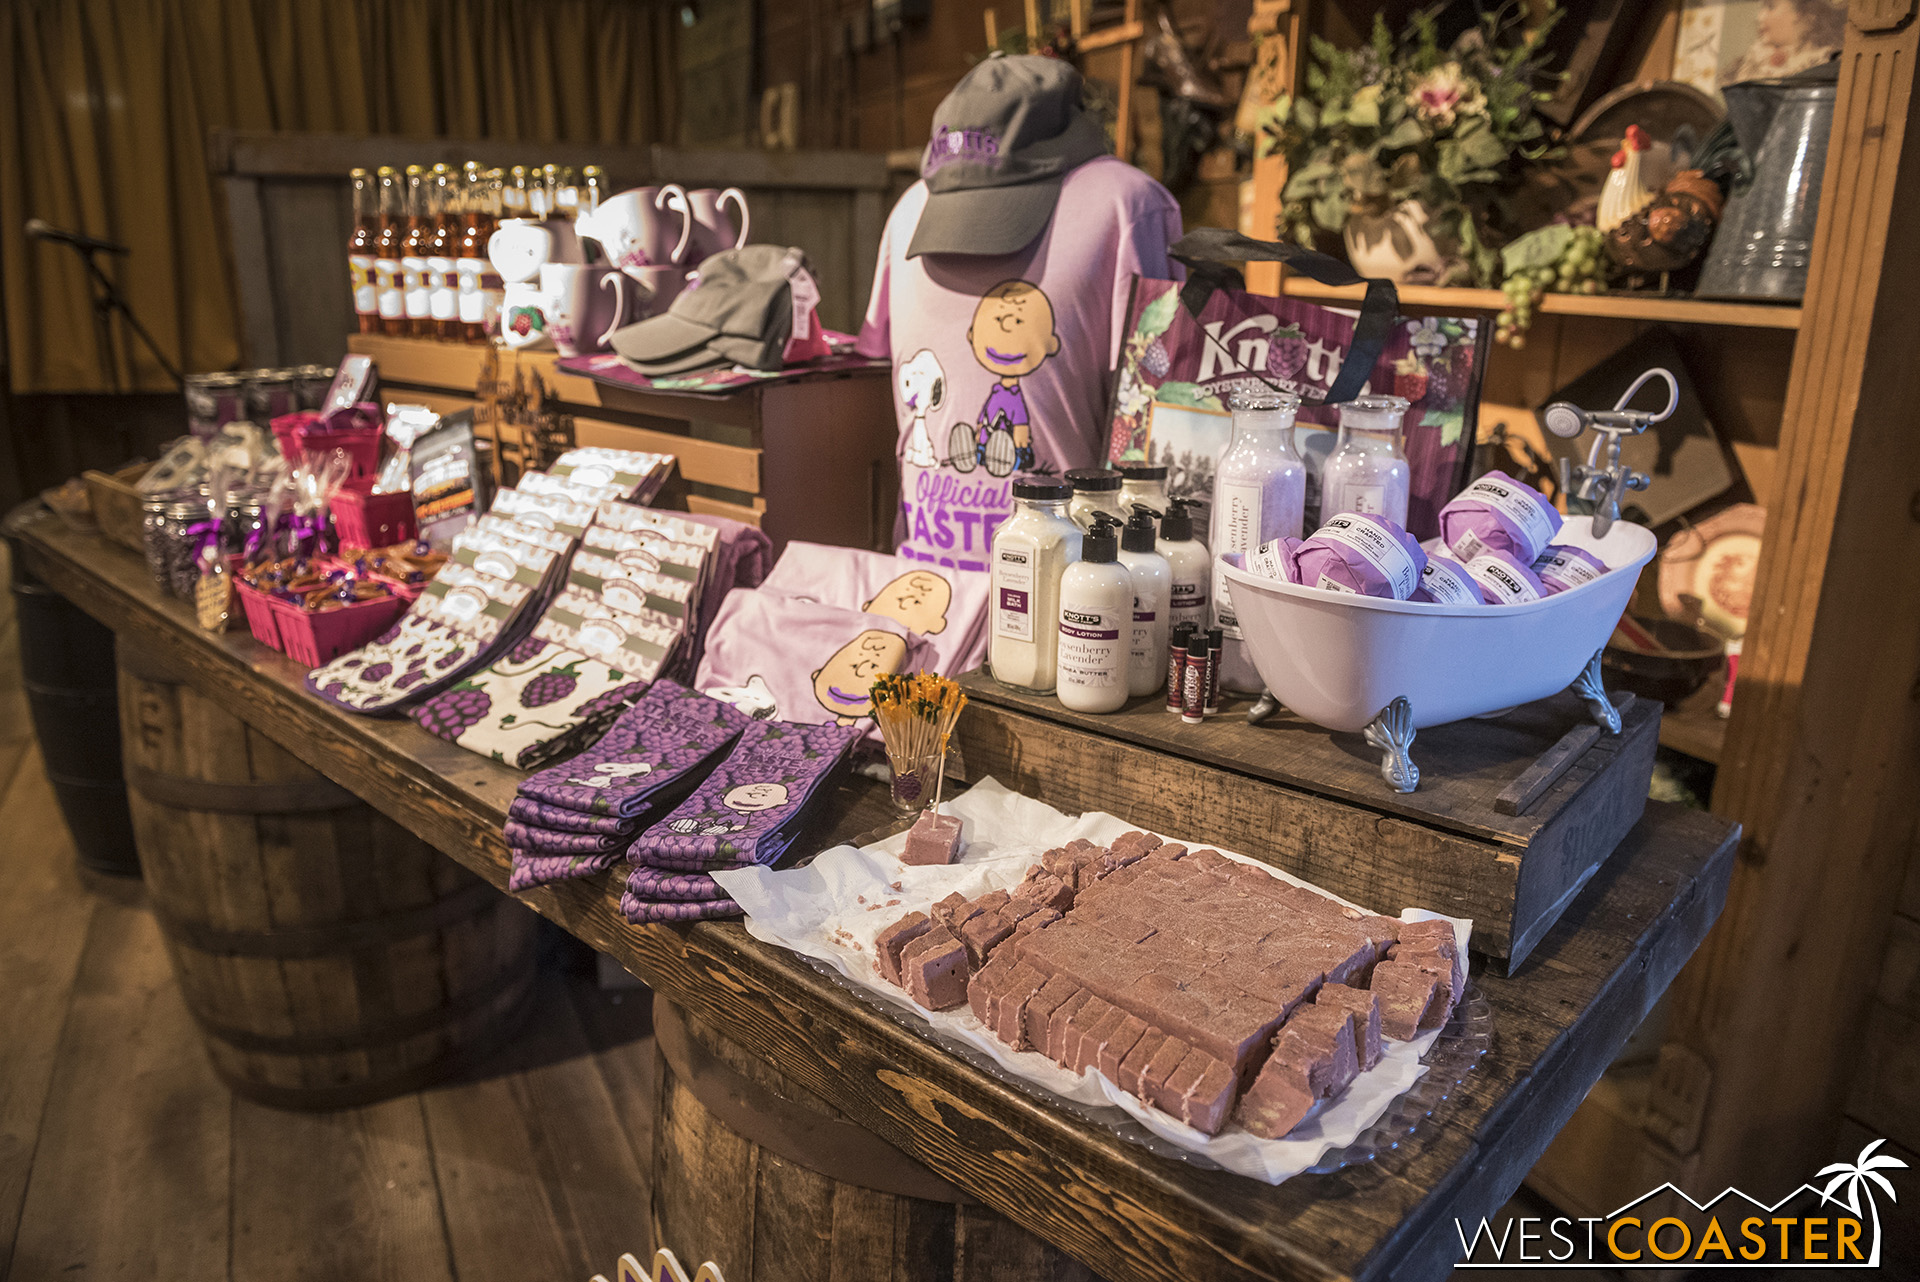 Yes, that's boysenberry fudge in front.  There are also boysenberry soaps and lotions too, for all the boysenberry fanatics out there!